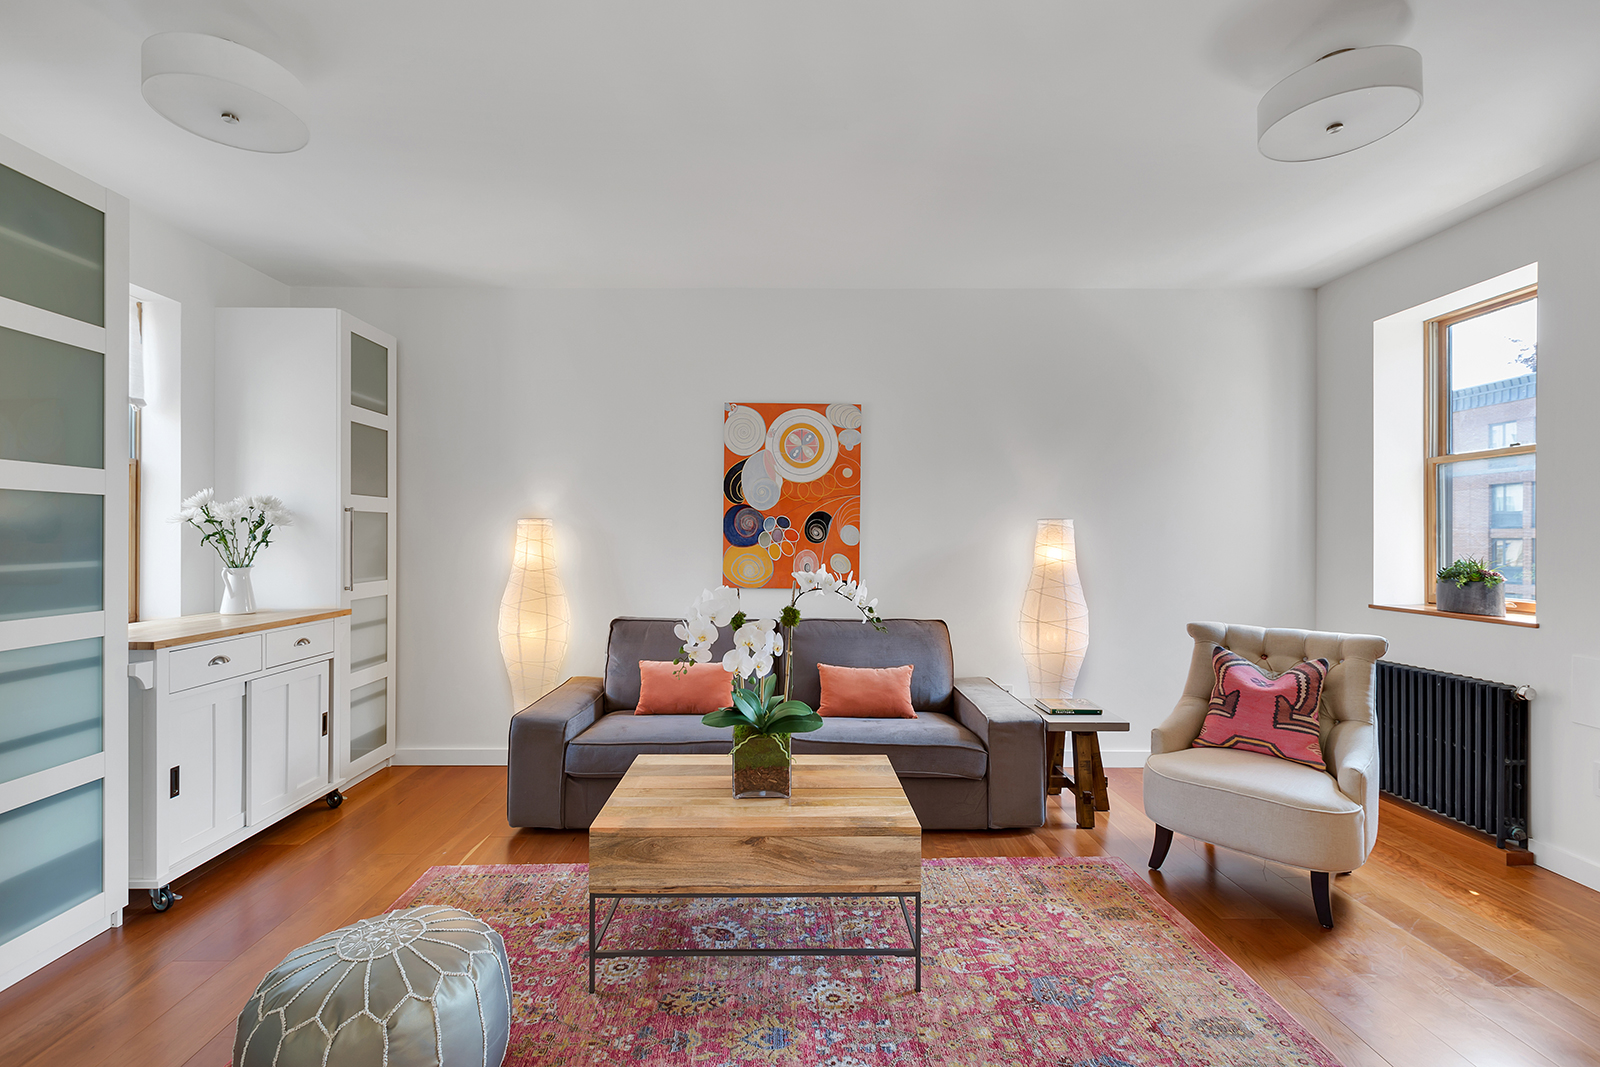 stylish chelsea duplex with expansive private terrace asks $1.6m